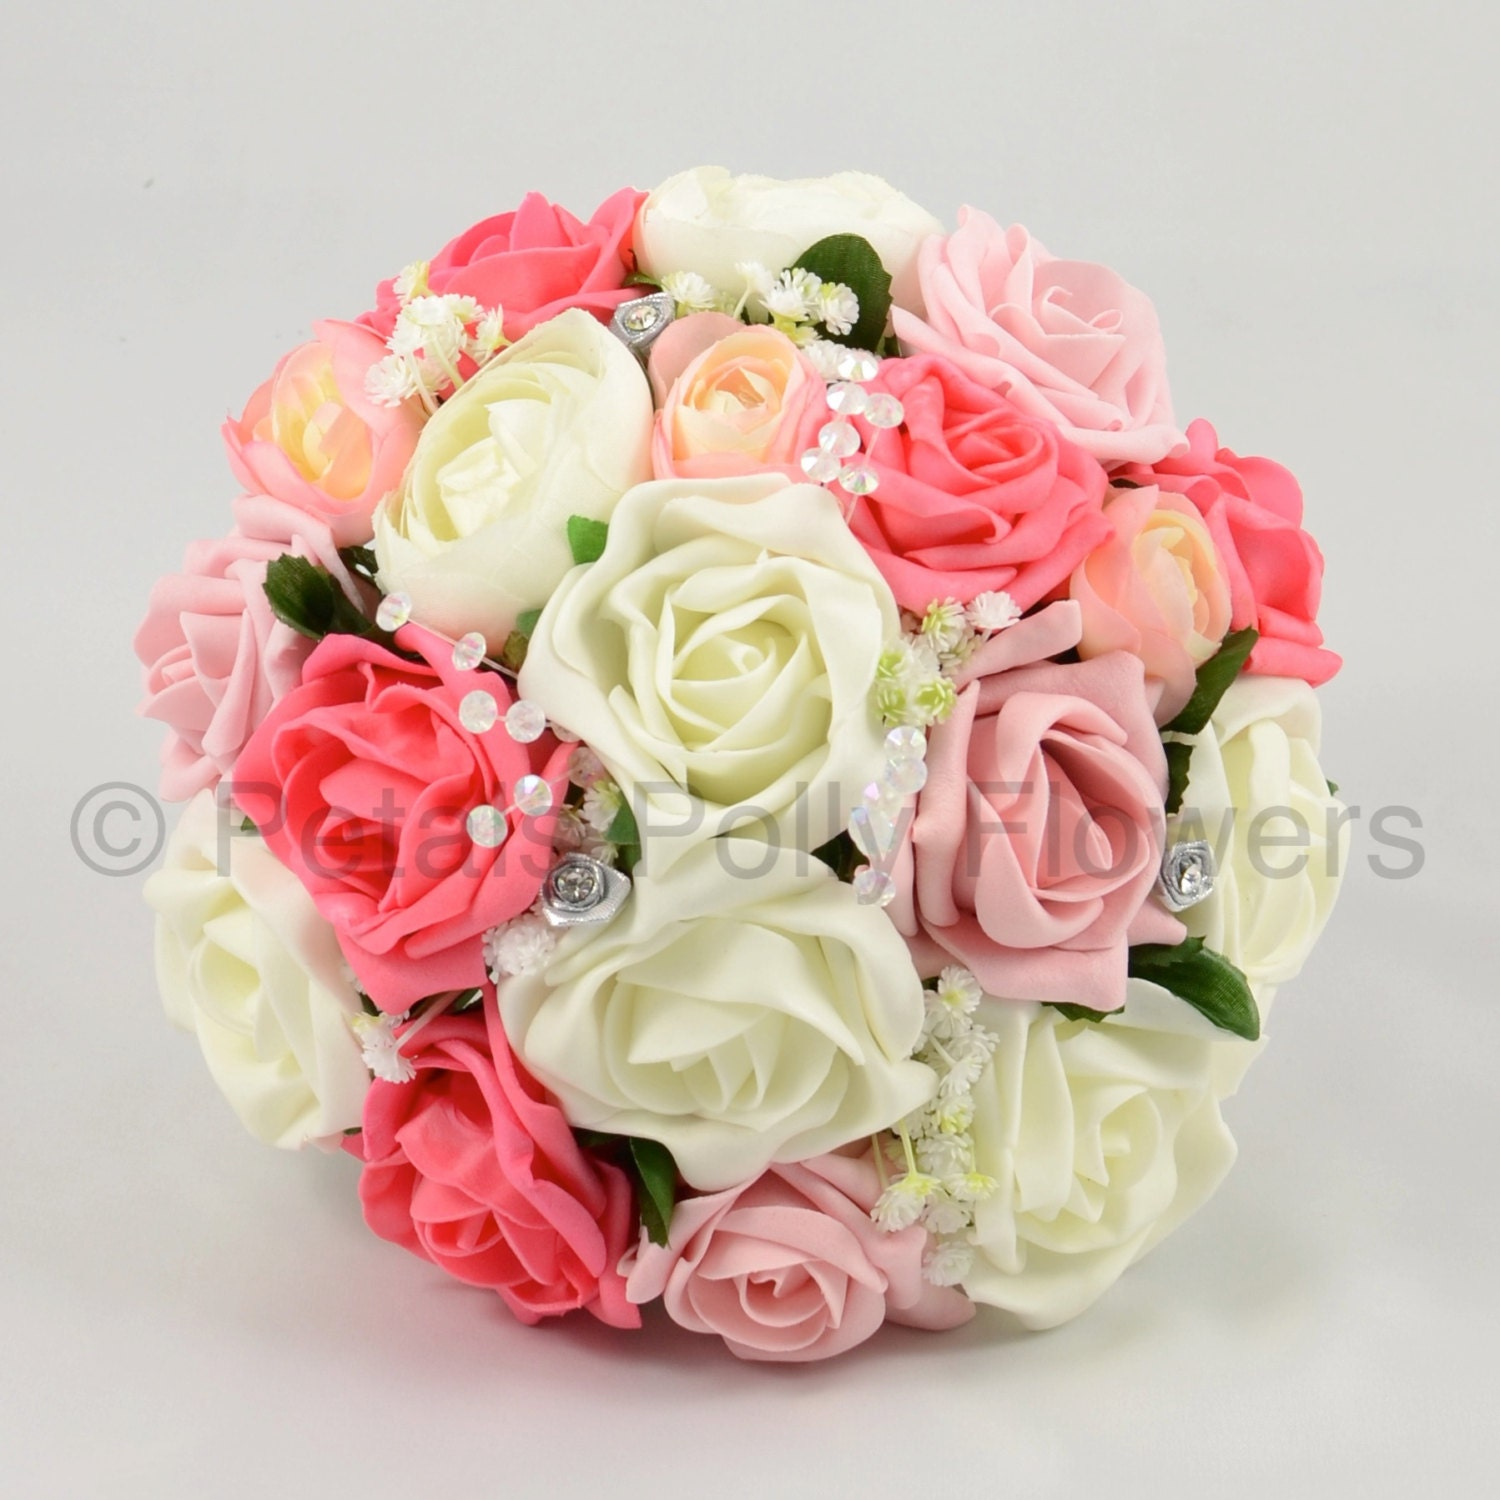 Artificial Wedding Flowers Antique Pink Coral  Ivory Rose Bridesmaids Bouquet Posy with Ranunculus